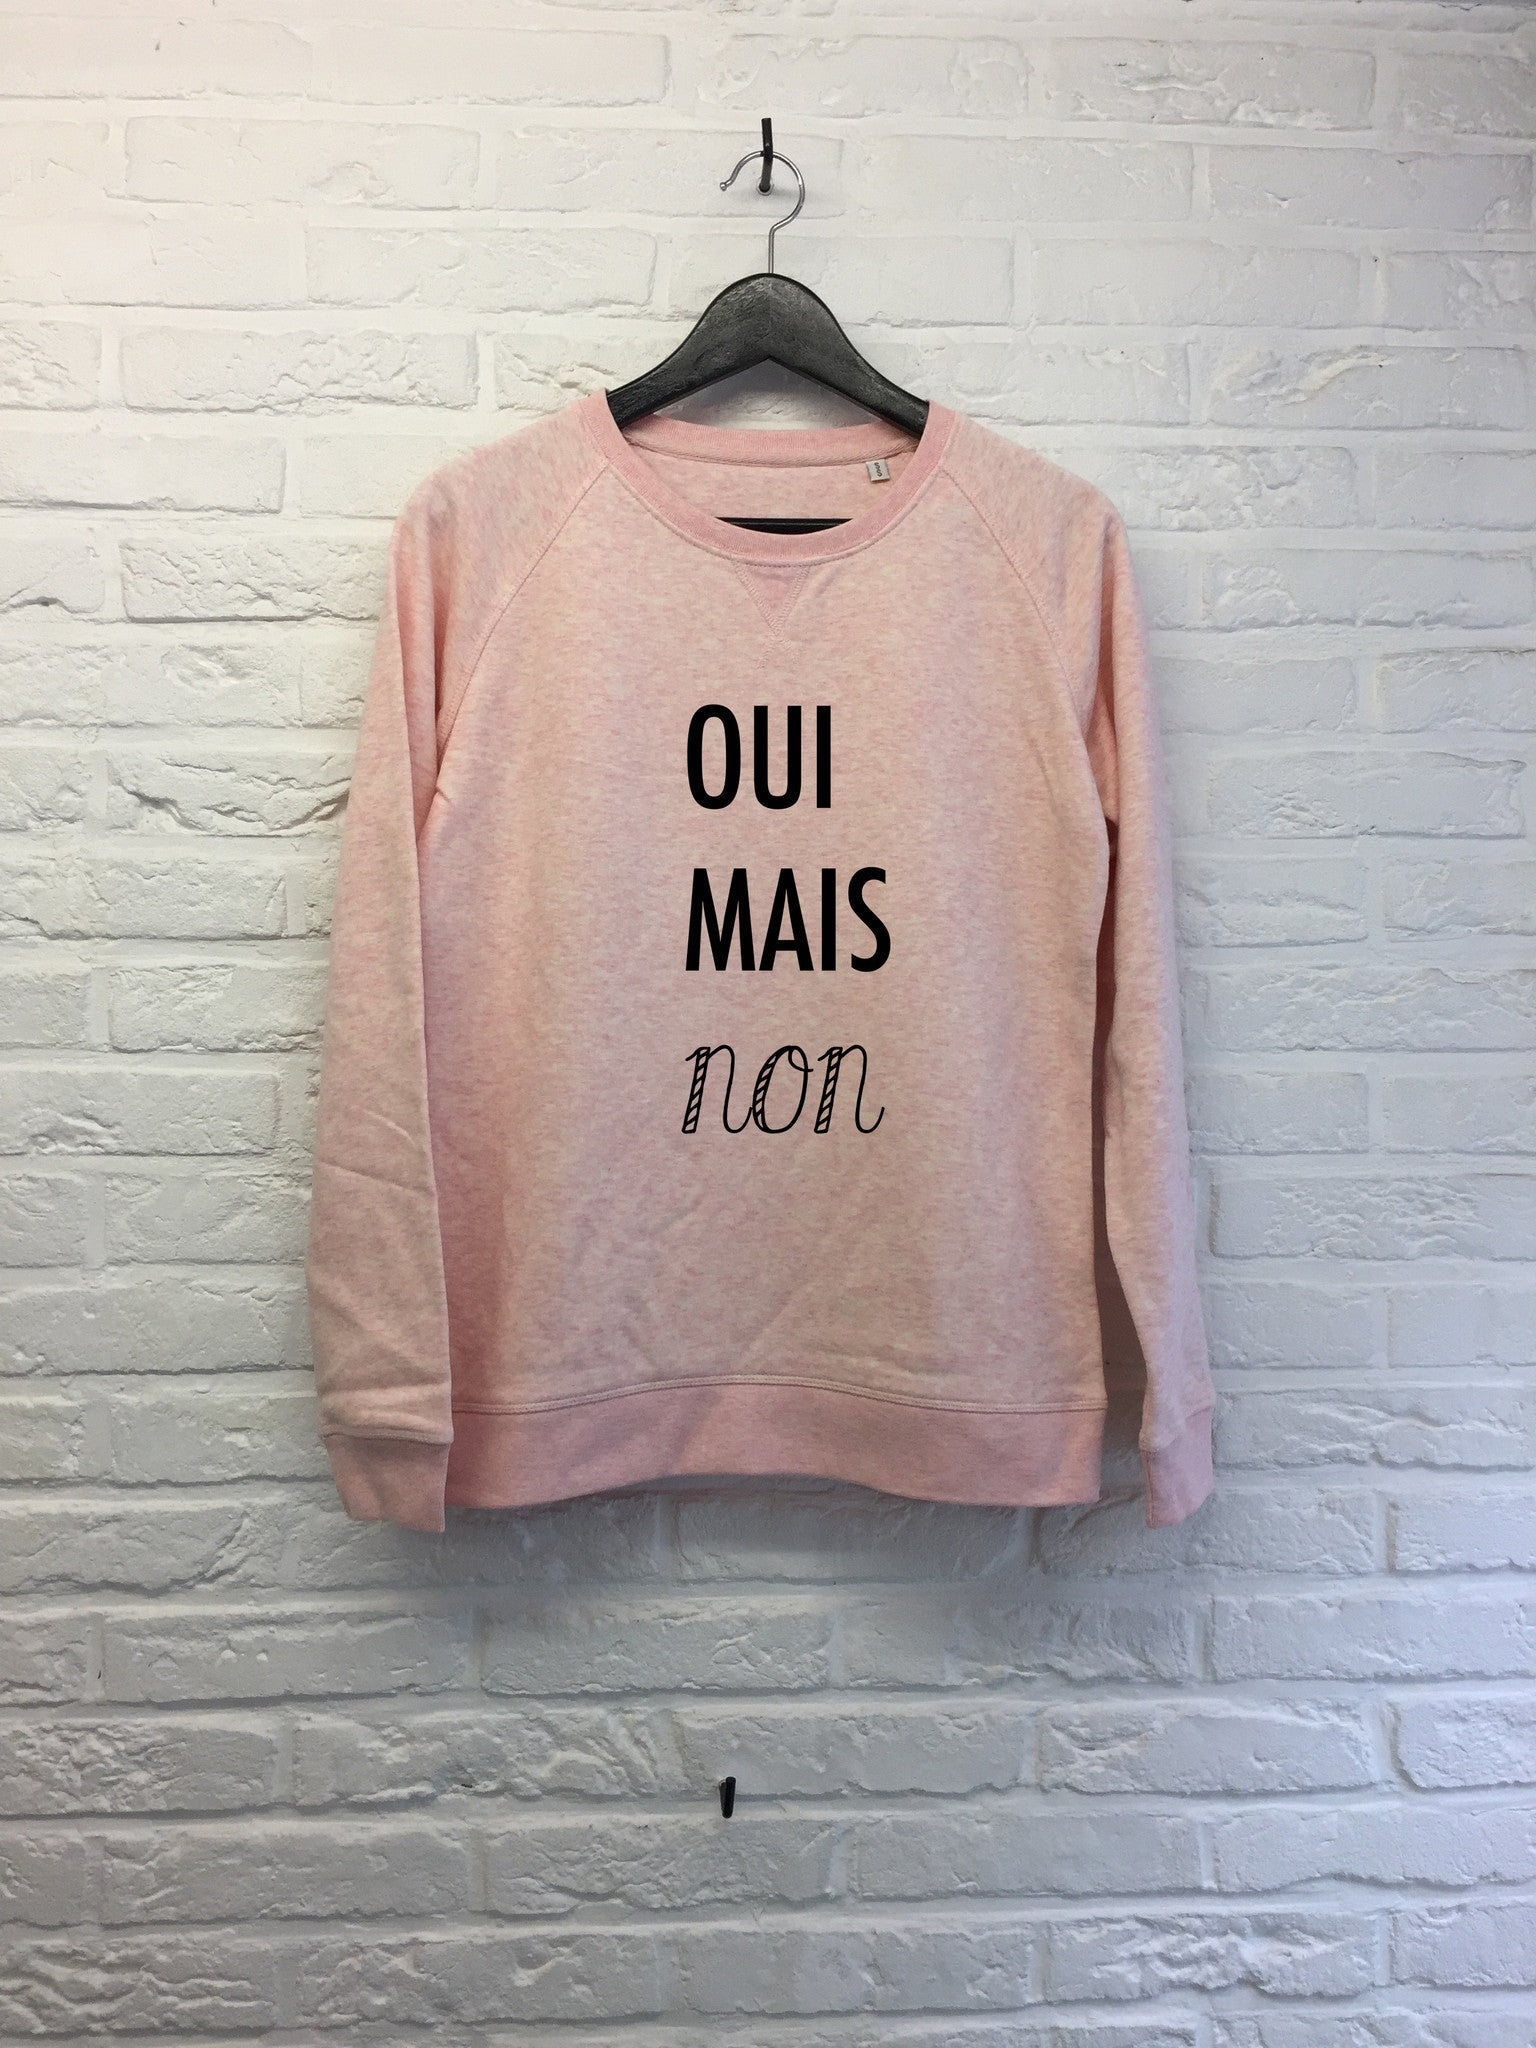 Oui mais non - Sweat - Femme-Sweat shirts-Atelier Amelot